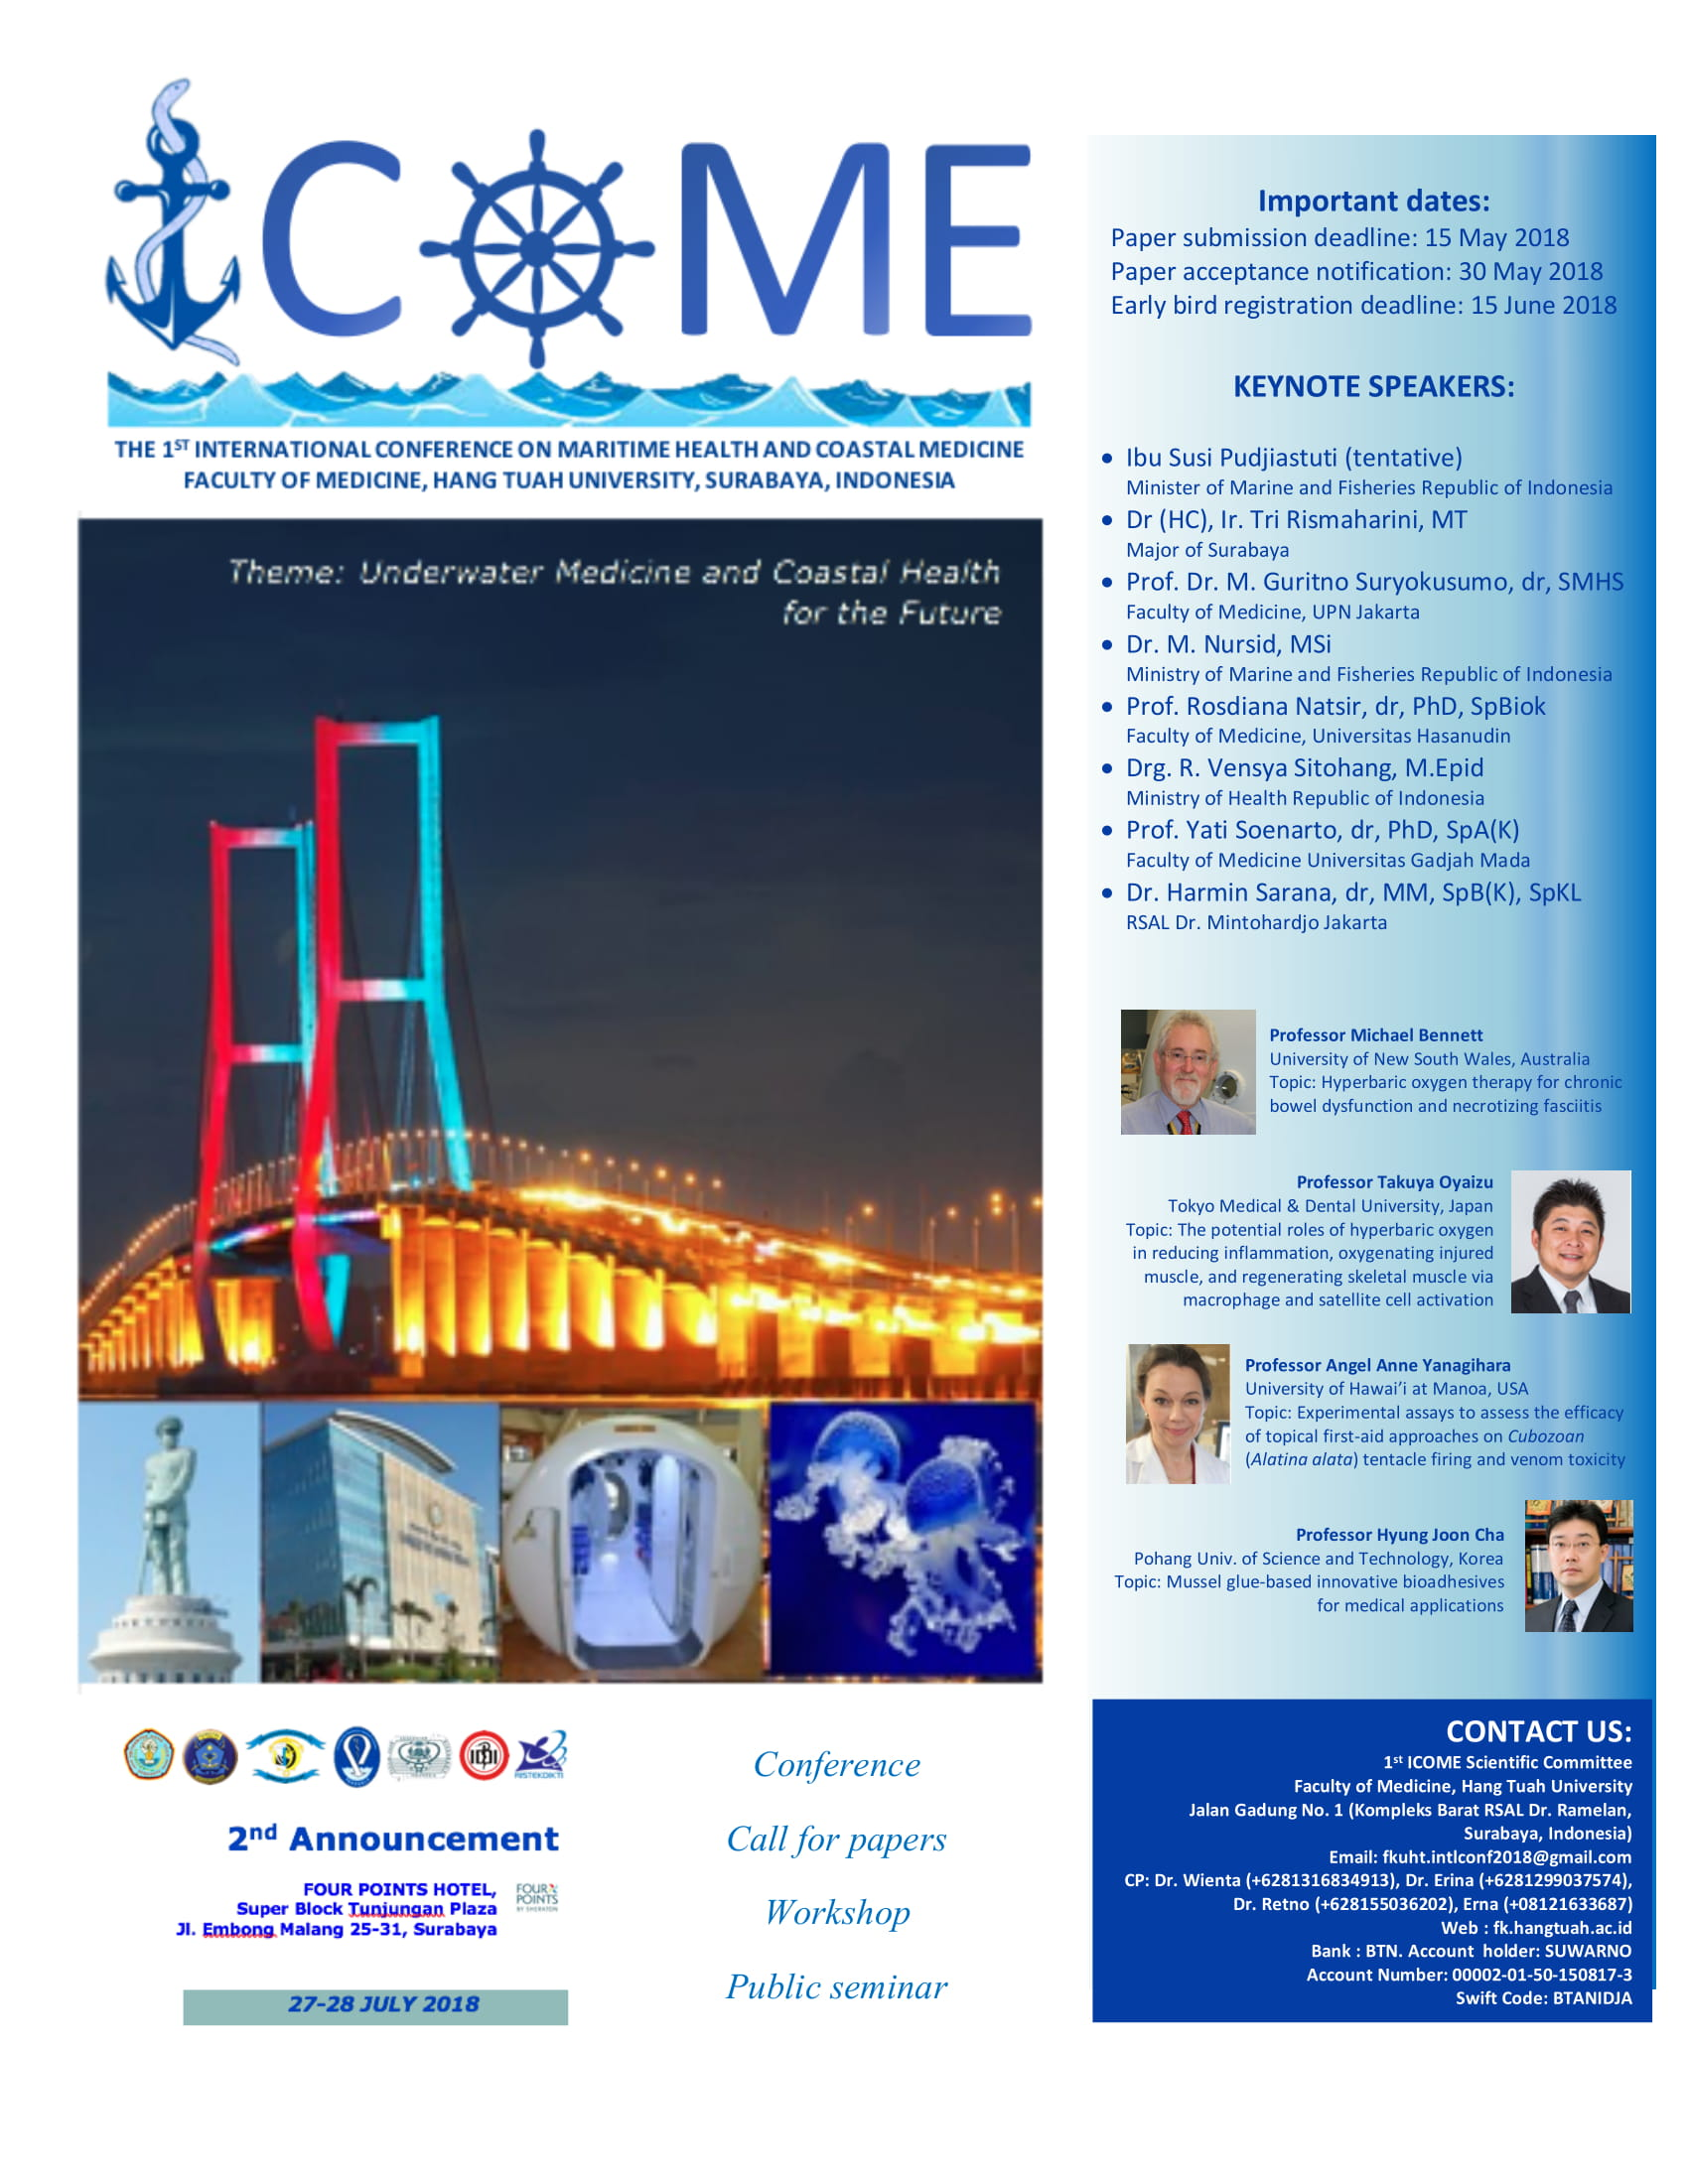 The 1st international conference on maritime health and coastral medicine faculty of medicine